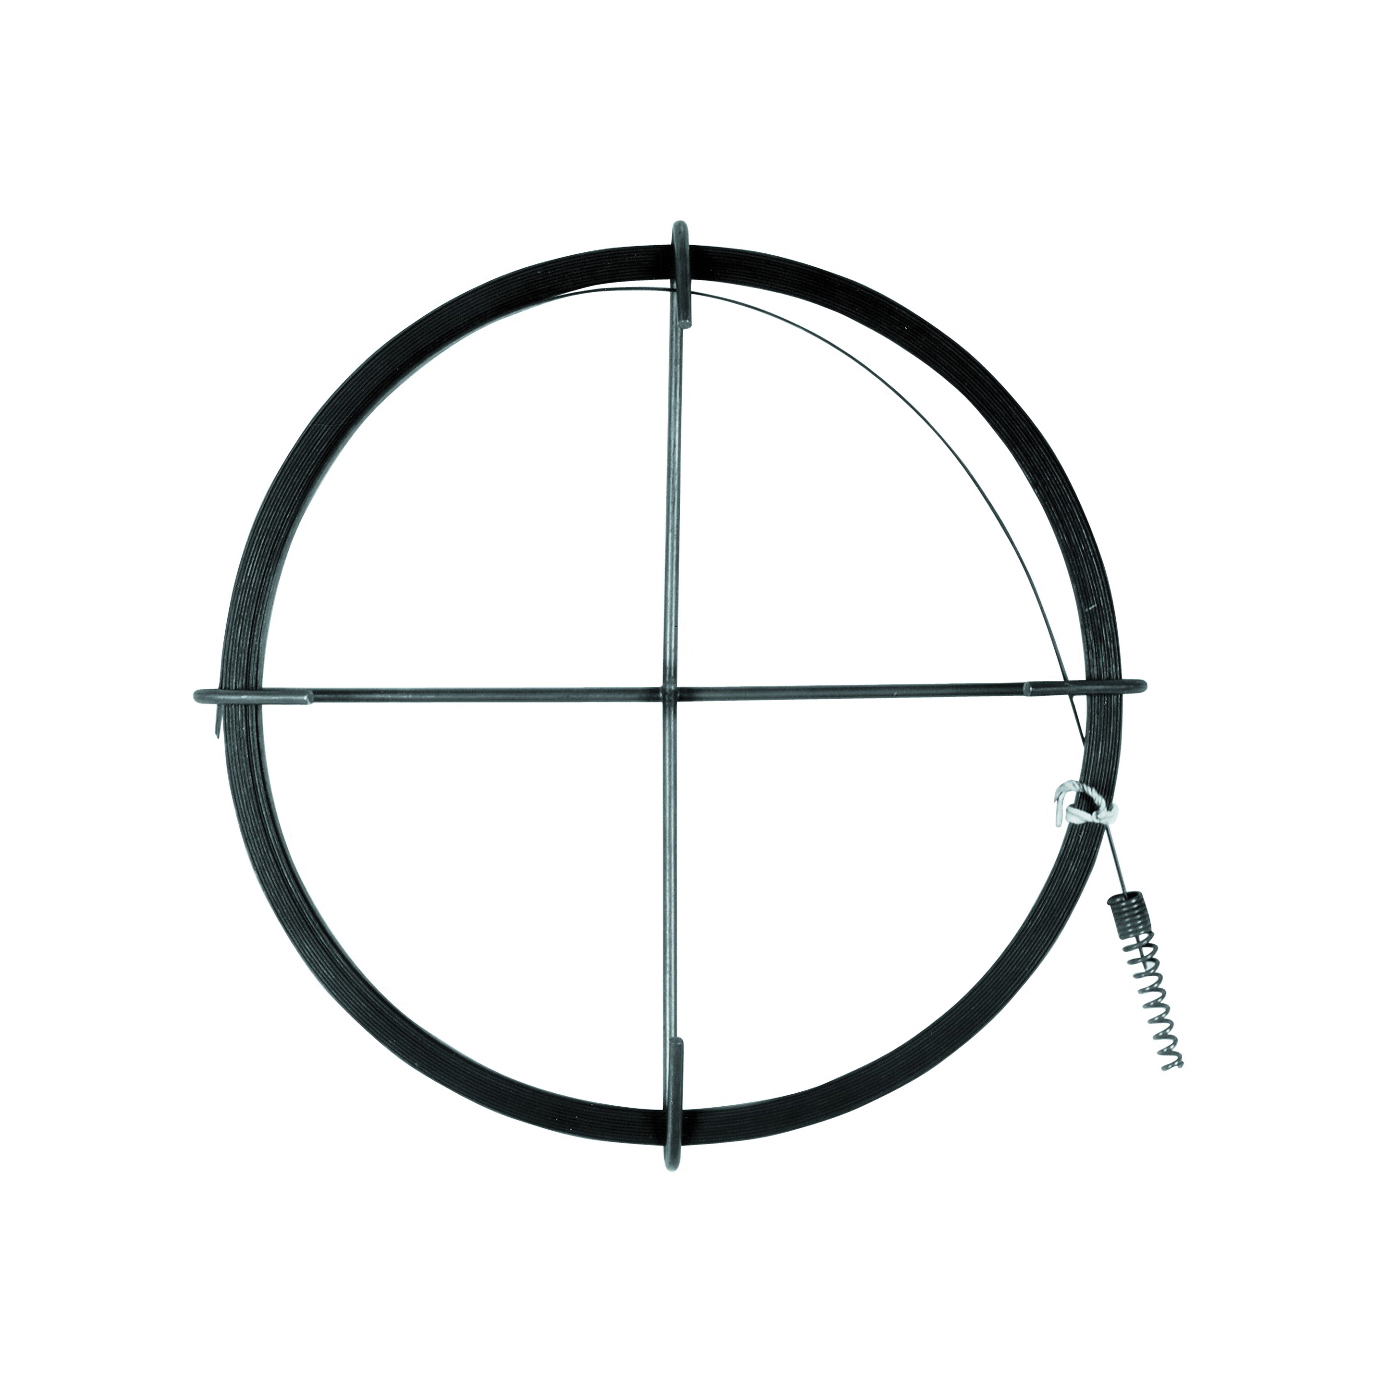 Picture of COBRA TOOLS 02500 Drain Tape, 1/4 in Dia Cable, 50 ft L Cable